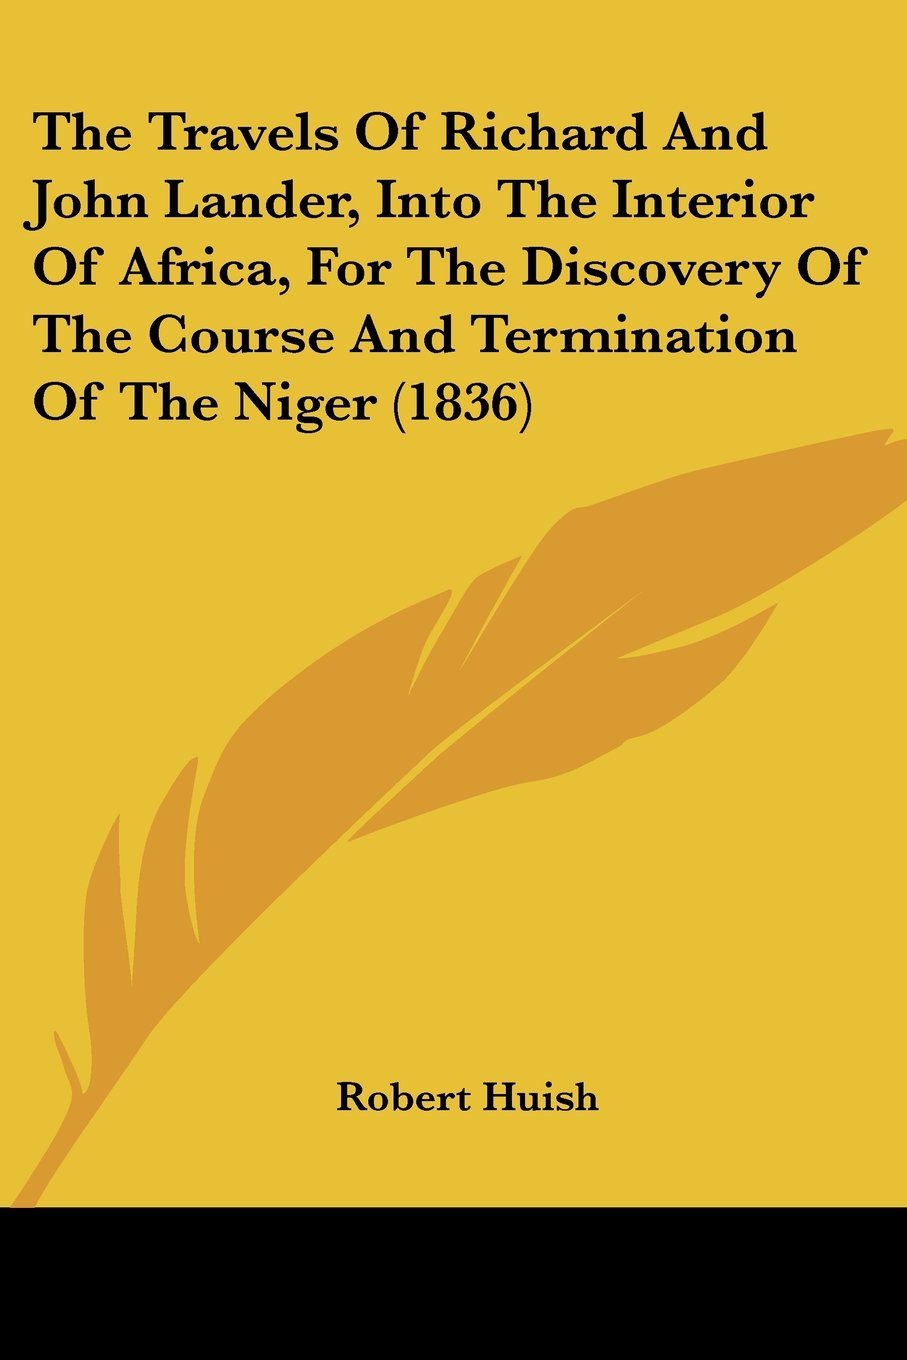 Download The Travels Of Richard And John Lander, Into The Interior Of Africa, For The Discovery Of The Course And Termination Of The Niger (1836) pdf epub